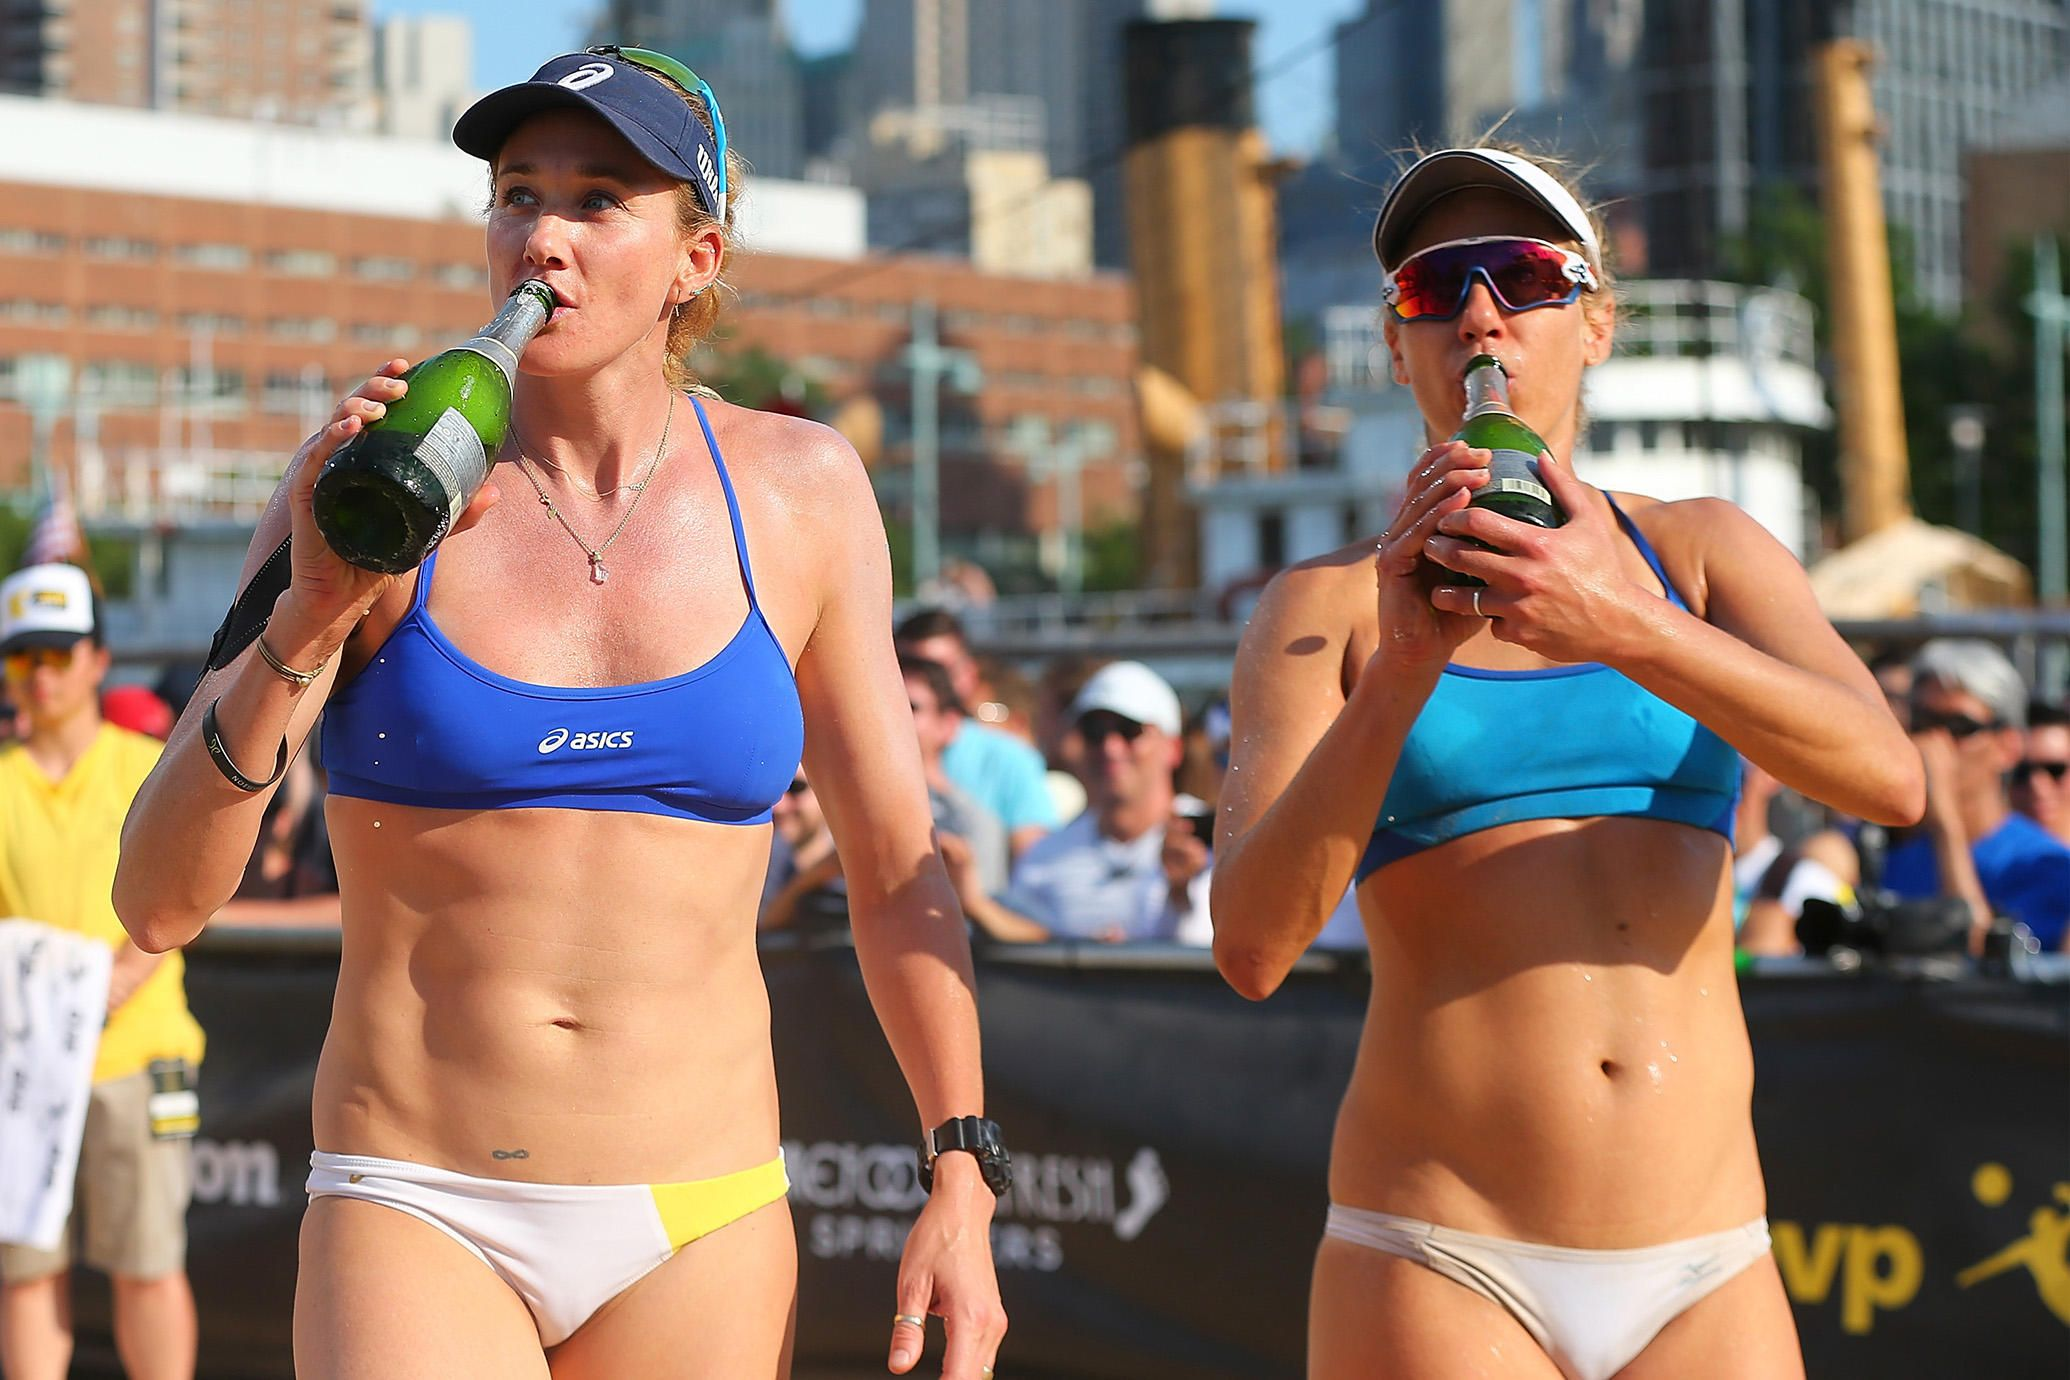 Rio Olympics What To Watch On Day 1 Swimming Gymnastics And Beach Volleyball Kick Off Beach Volleyball Rio Olympics Volleyball